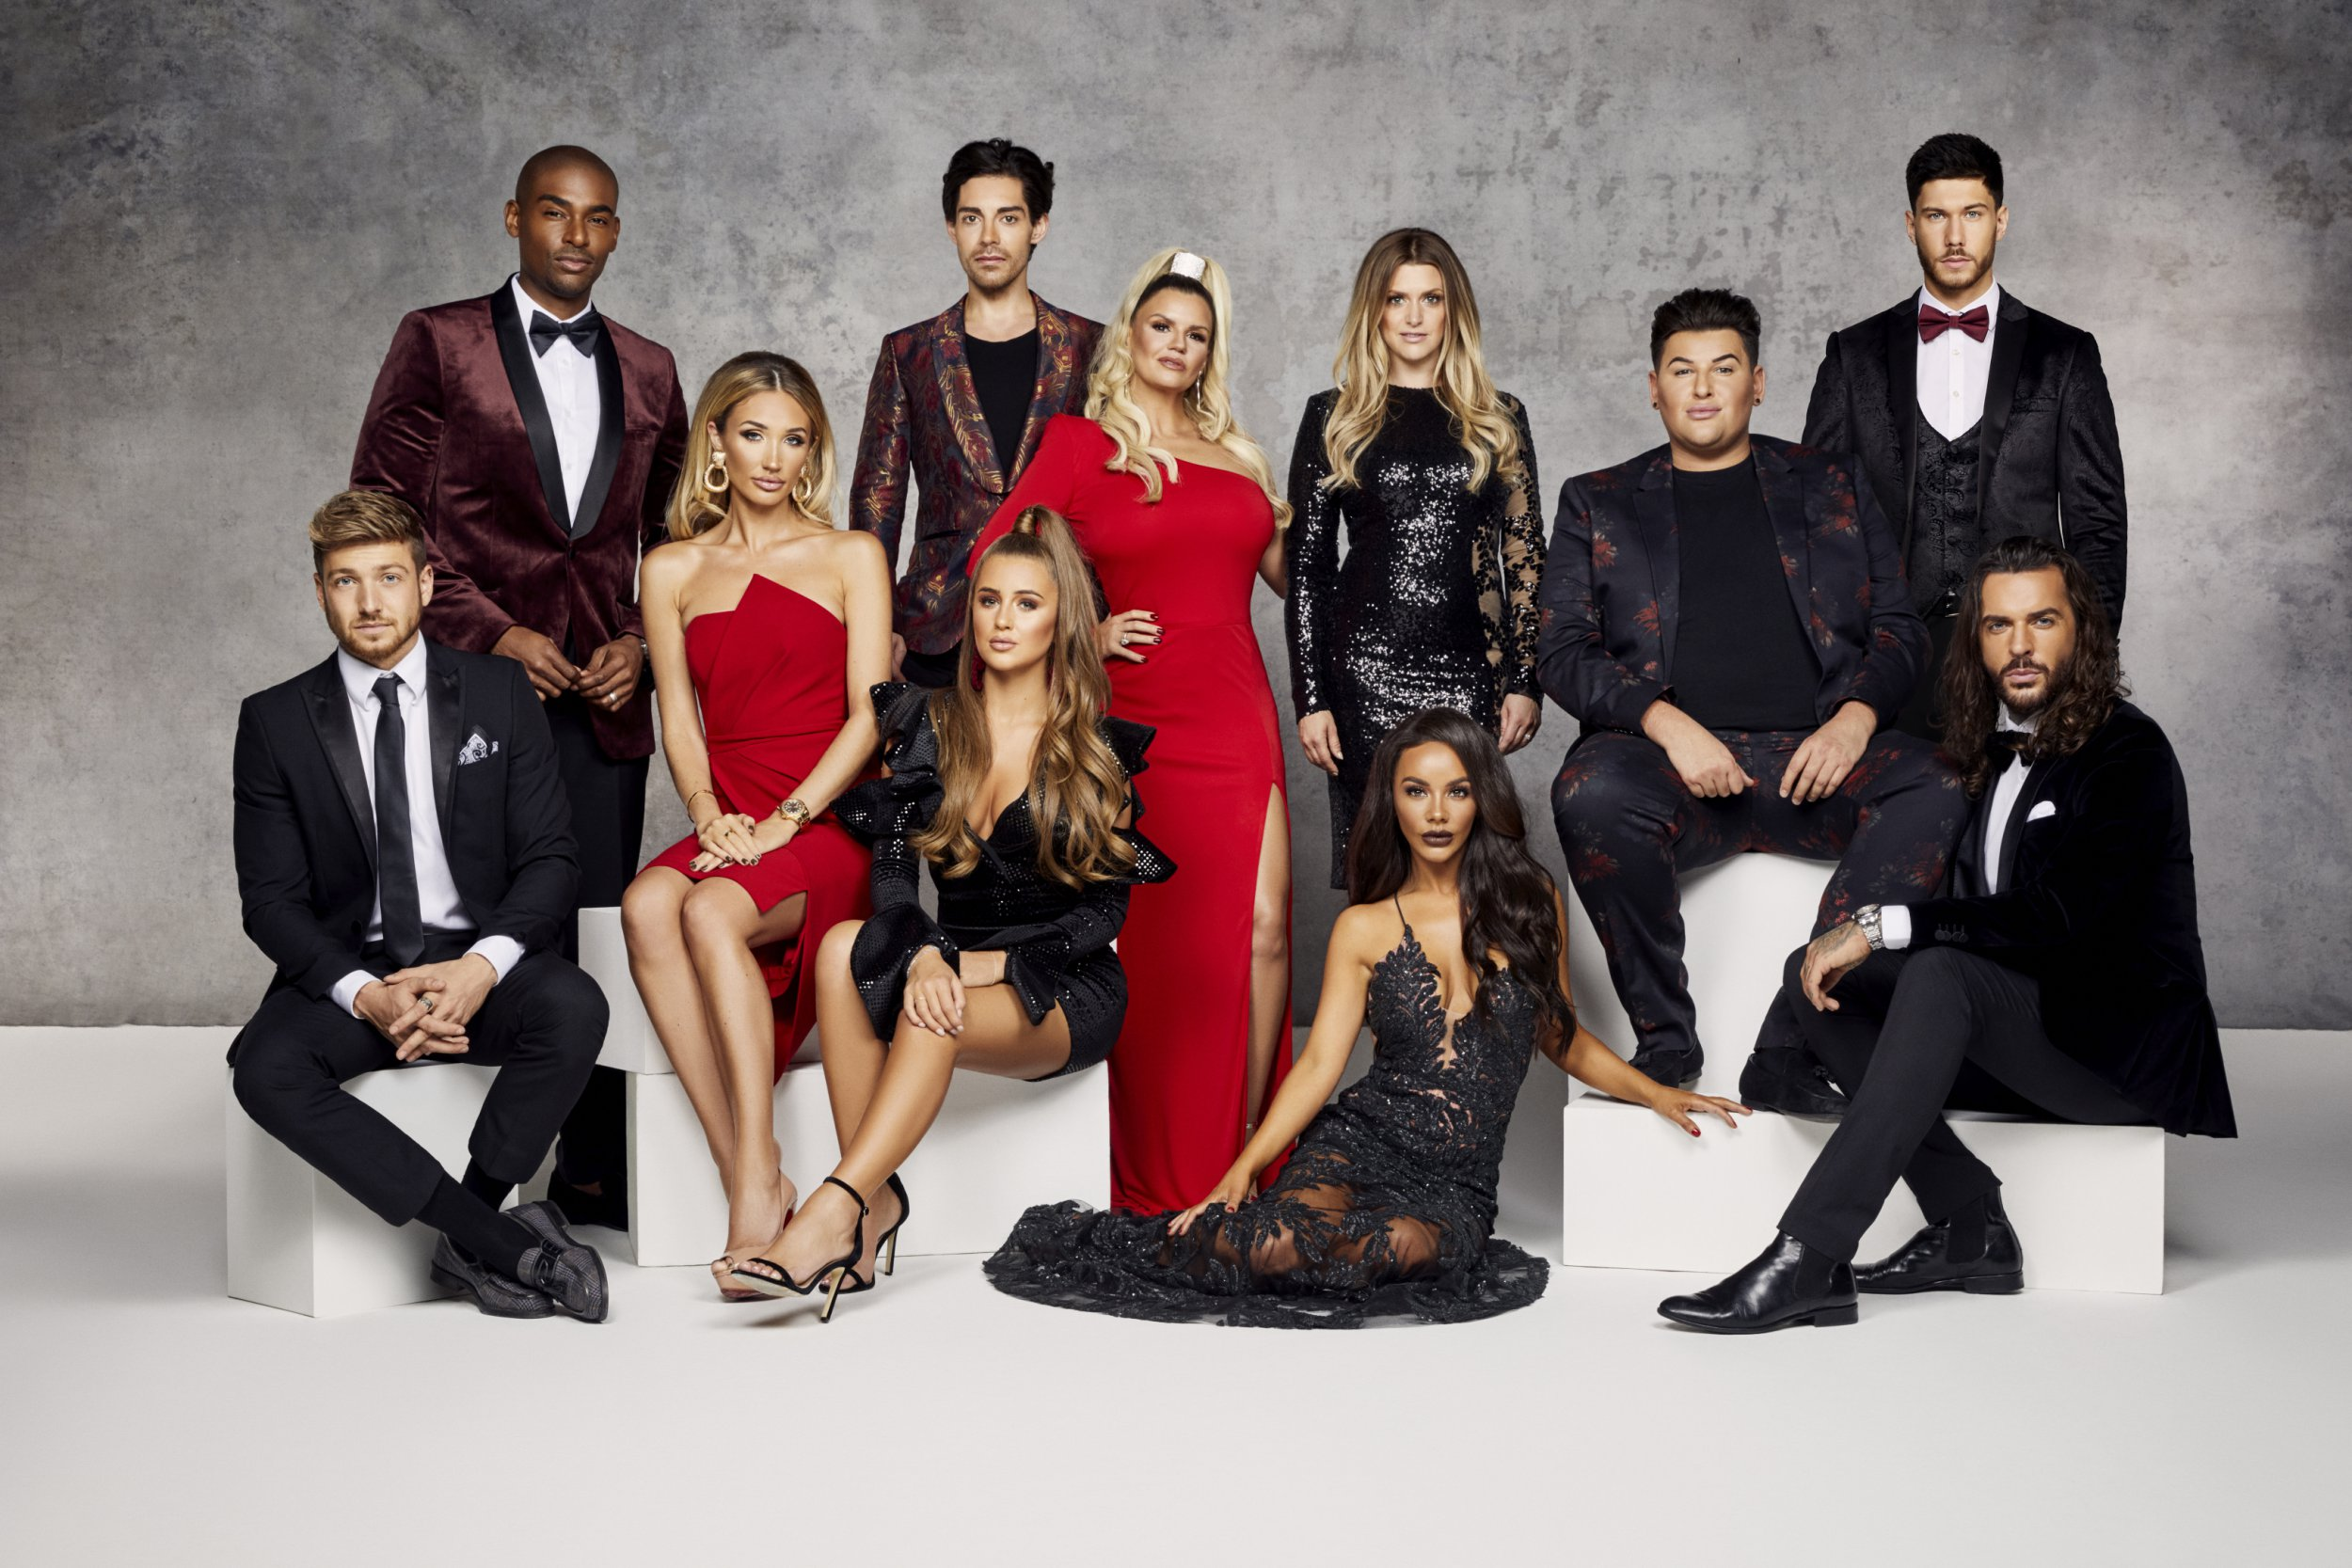 Who is dating who in strictly come dancing 2020